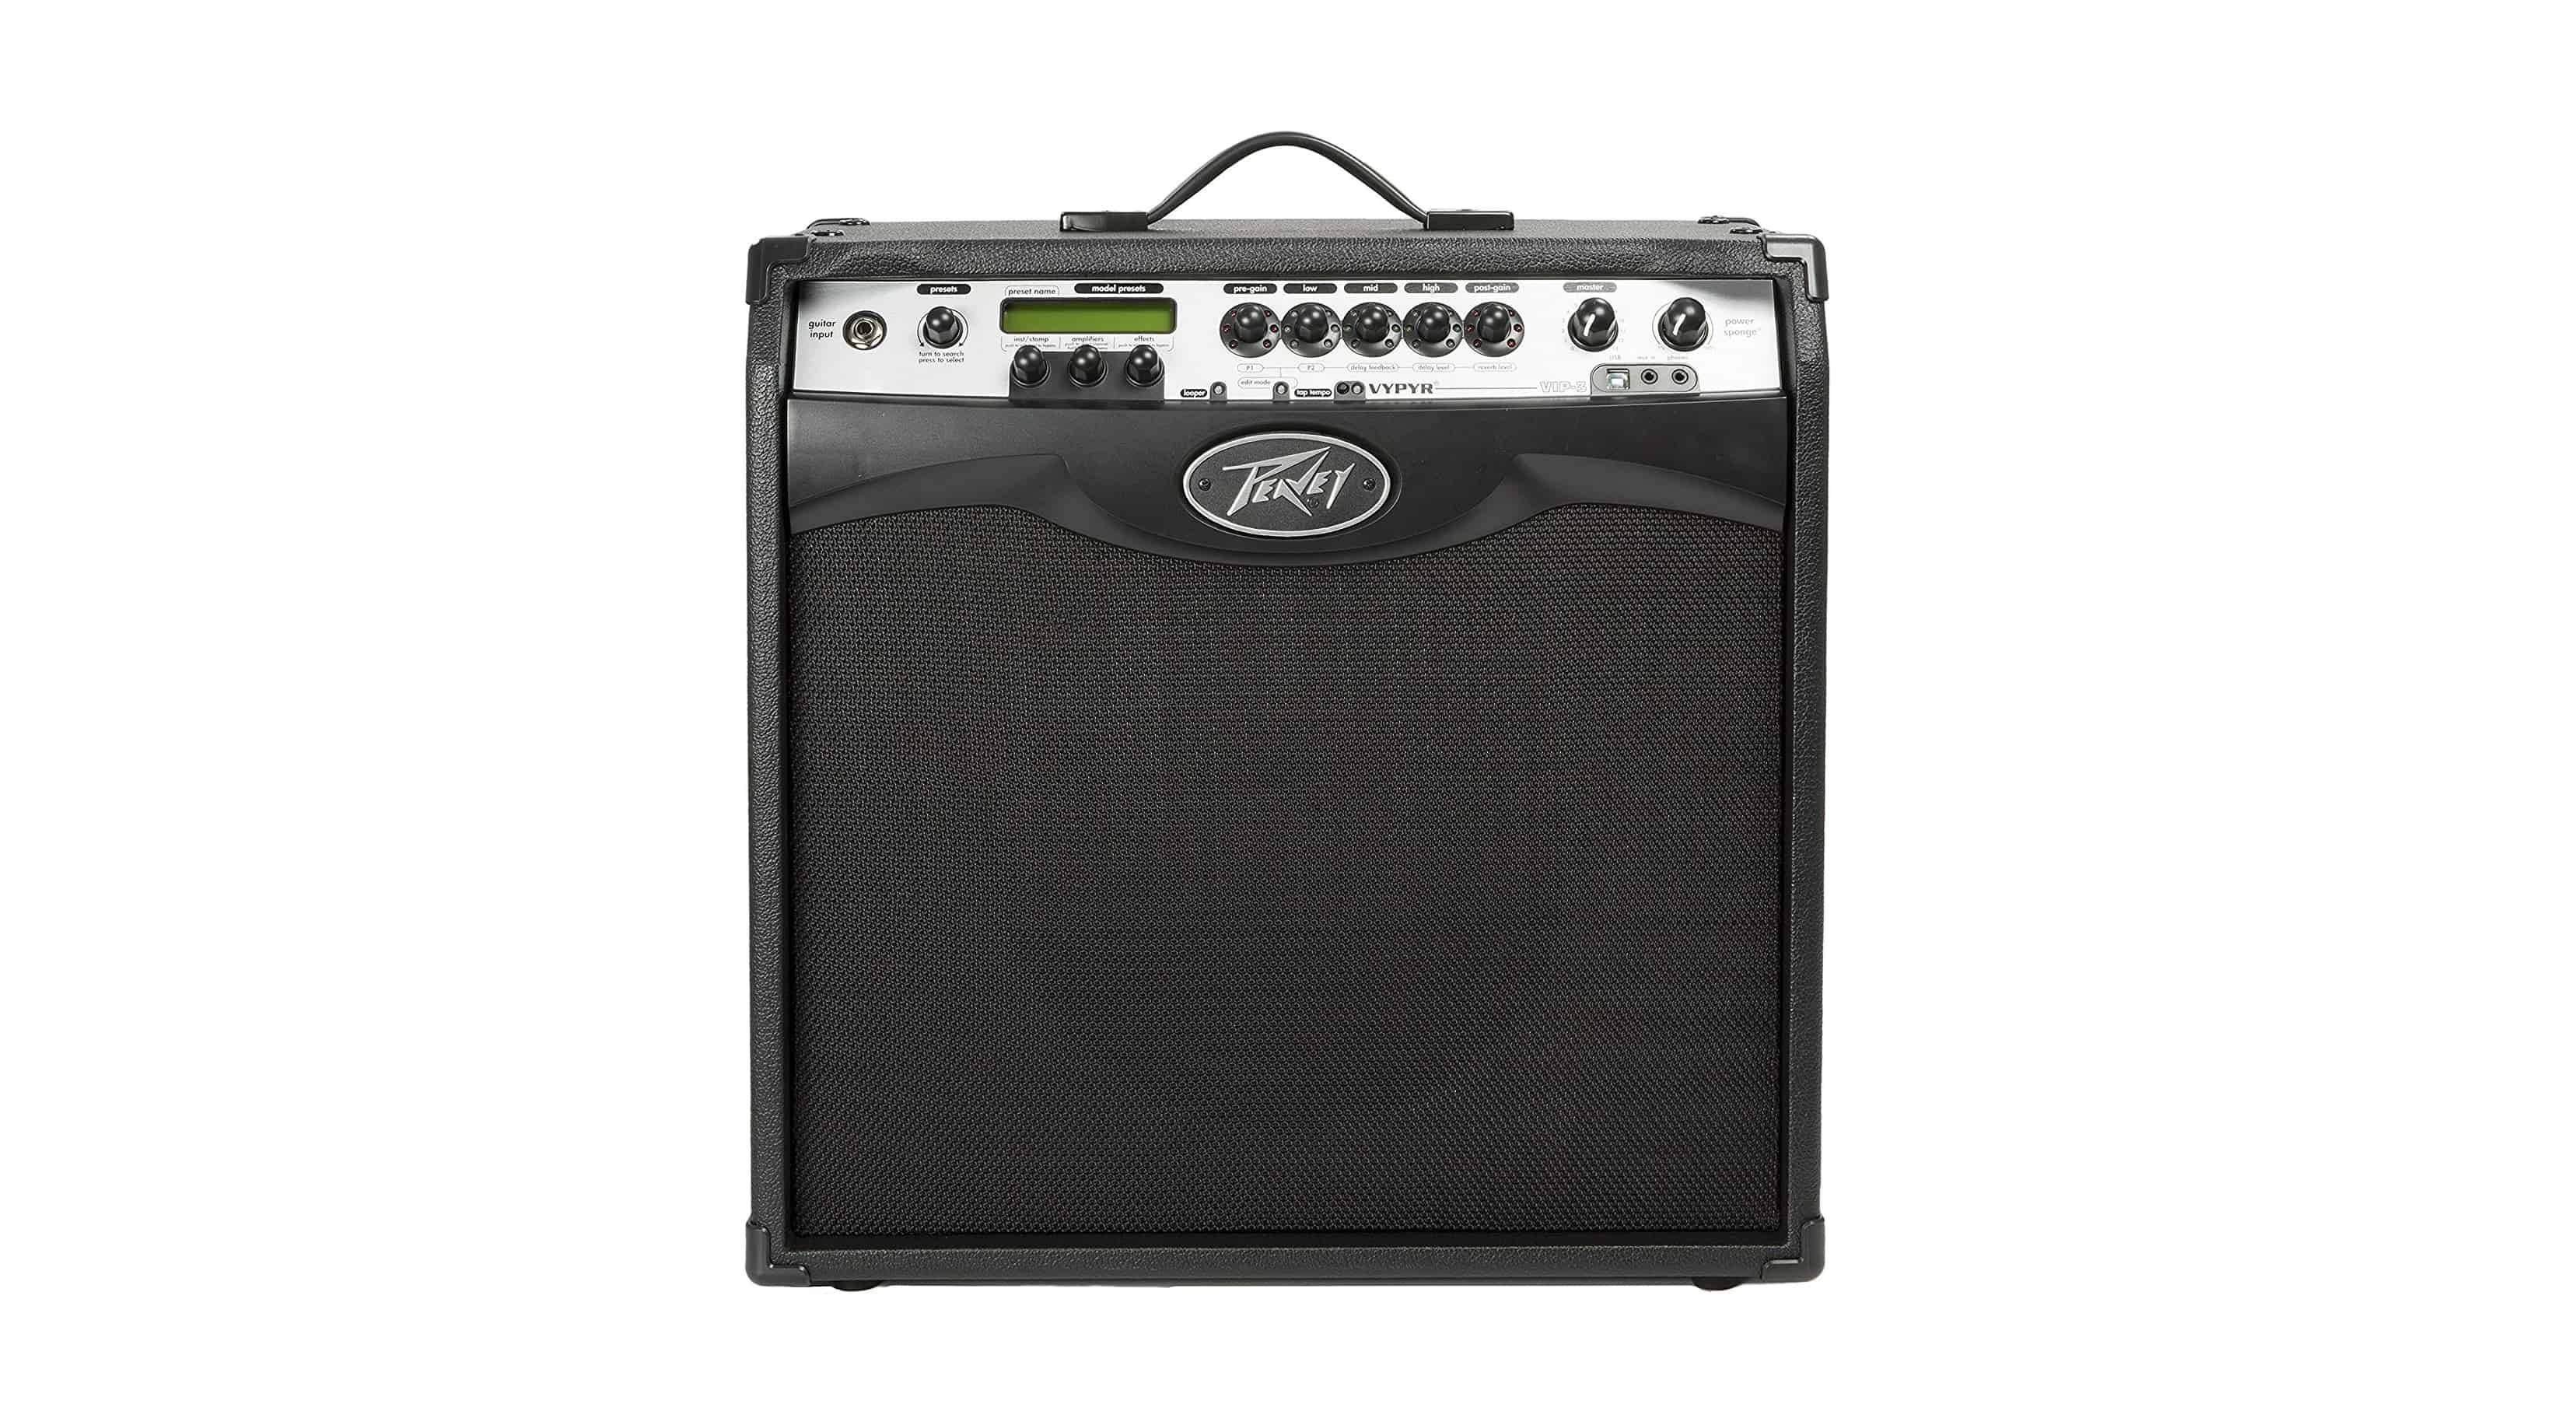 Peavey Vypyr VIP 3 Guitar Amplifier Review